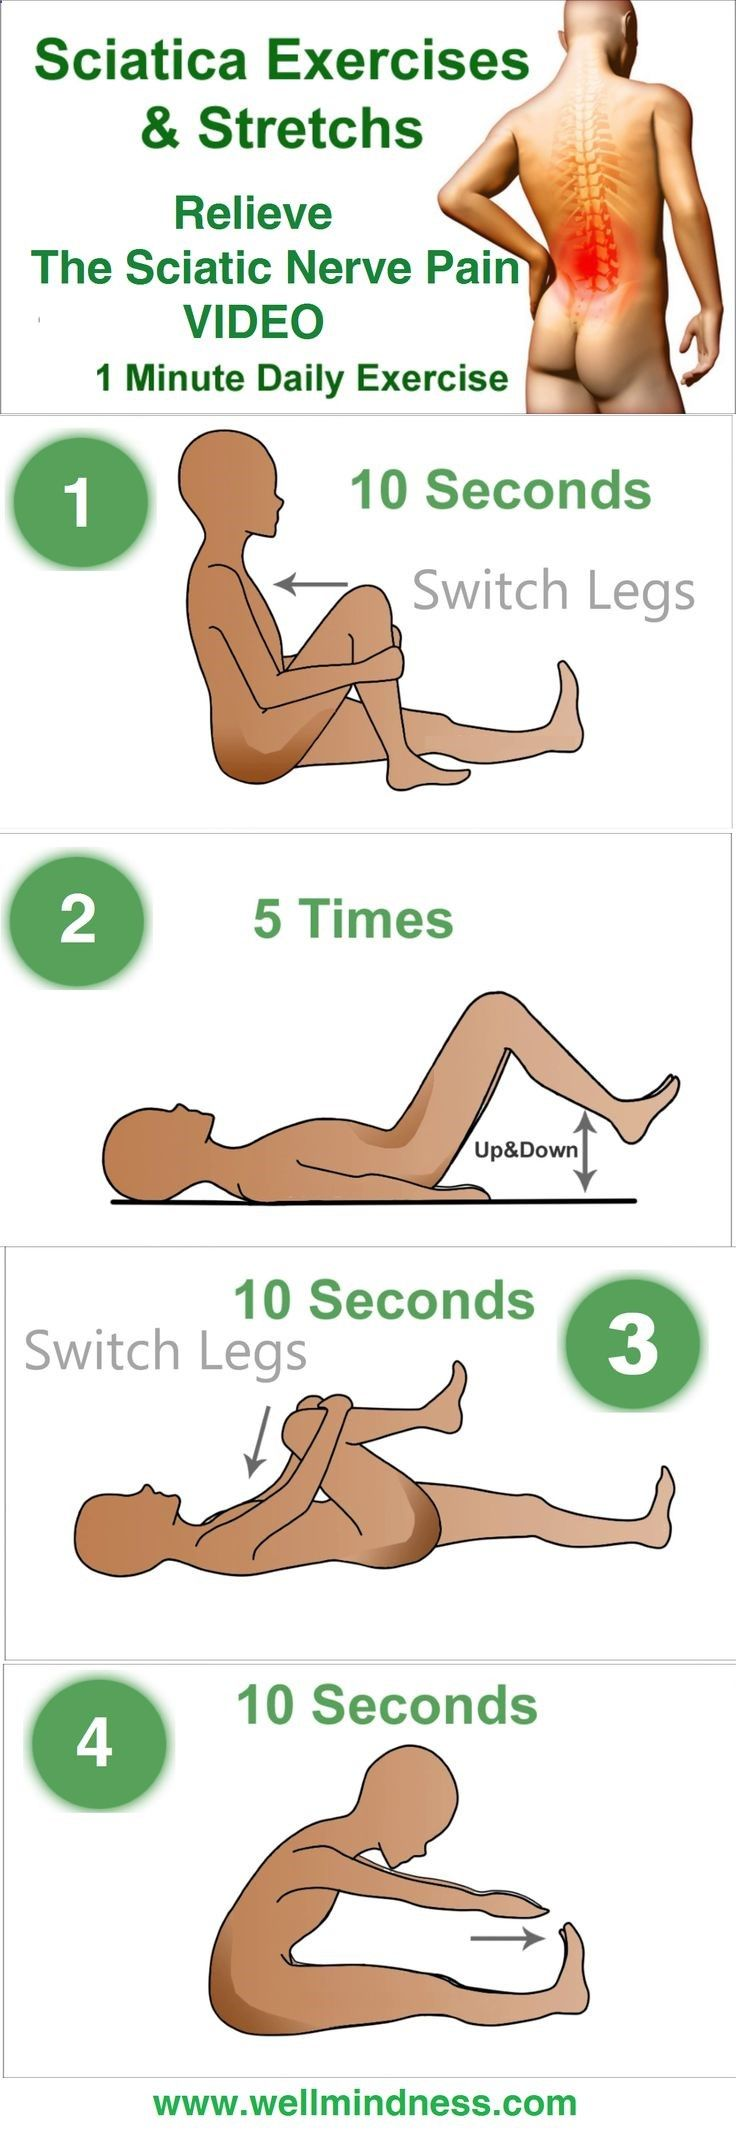 If you want to relieve the sciatic nerve pain without using the help of a physical therapist simply watch this video.